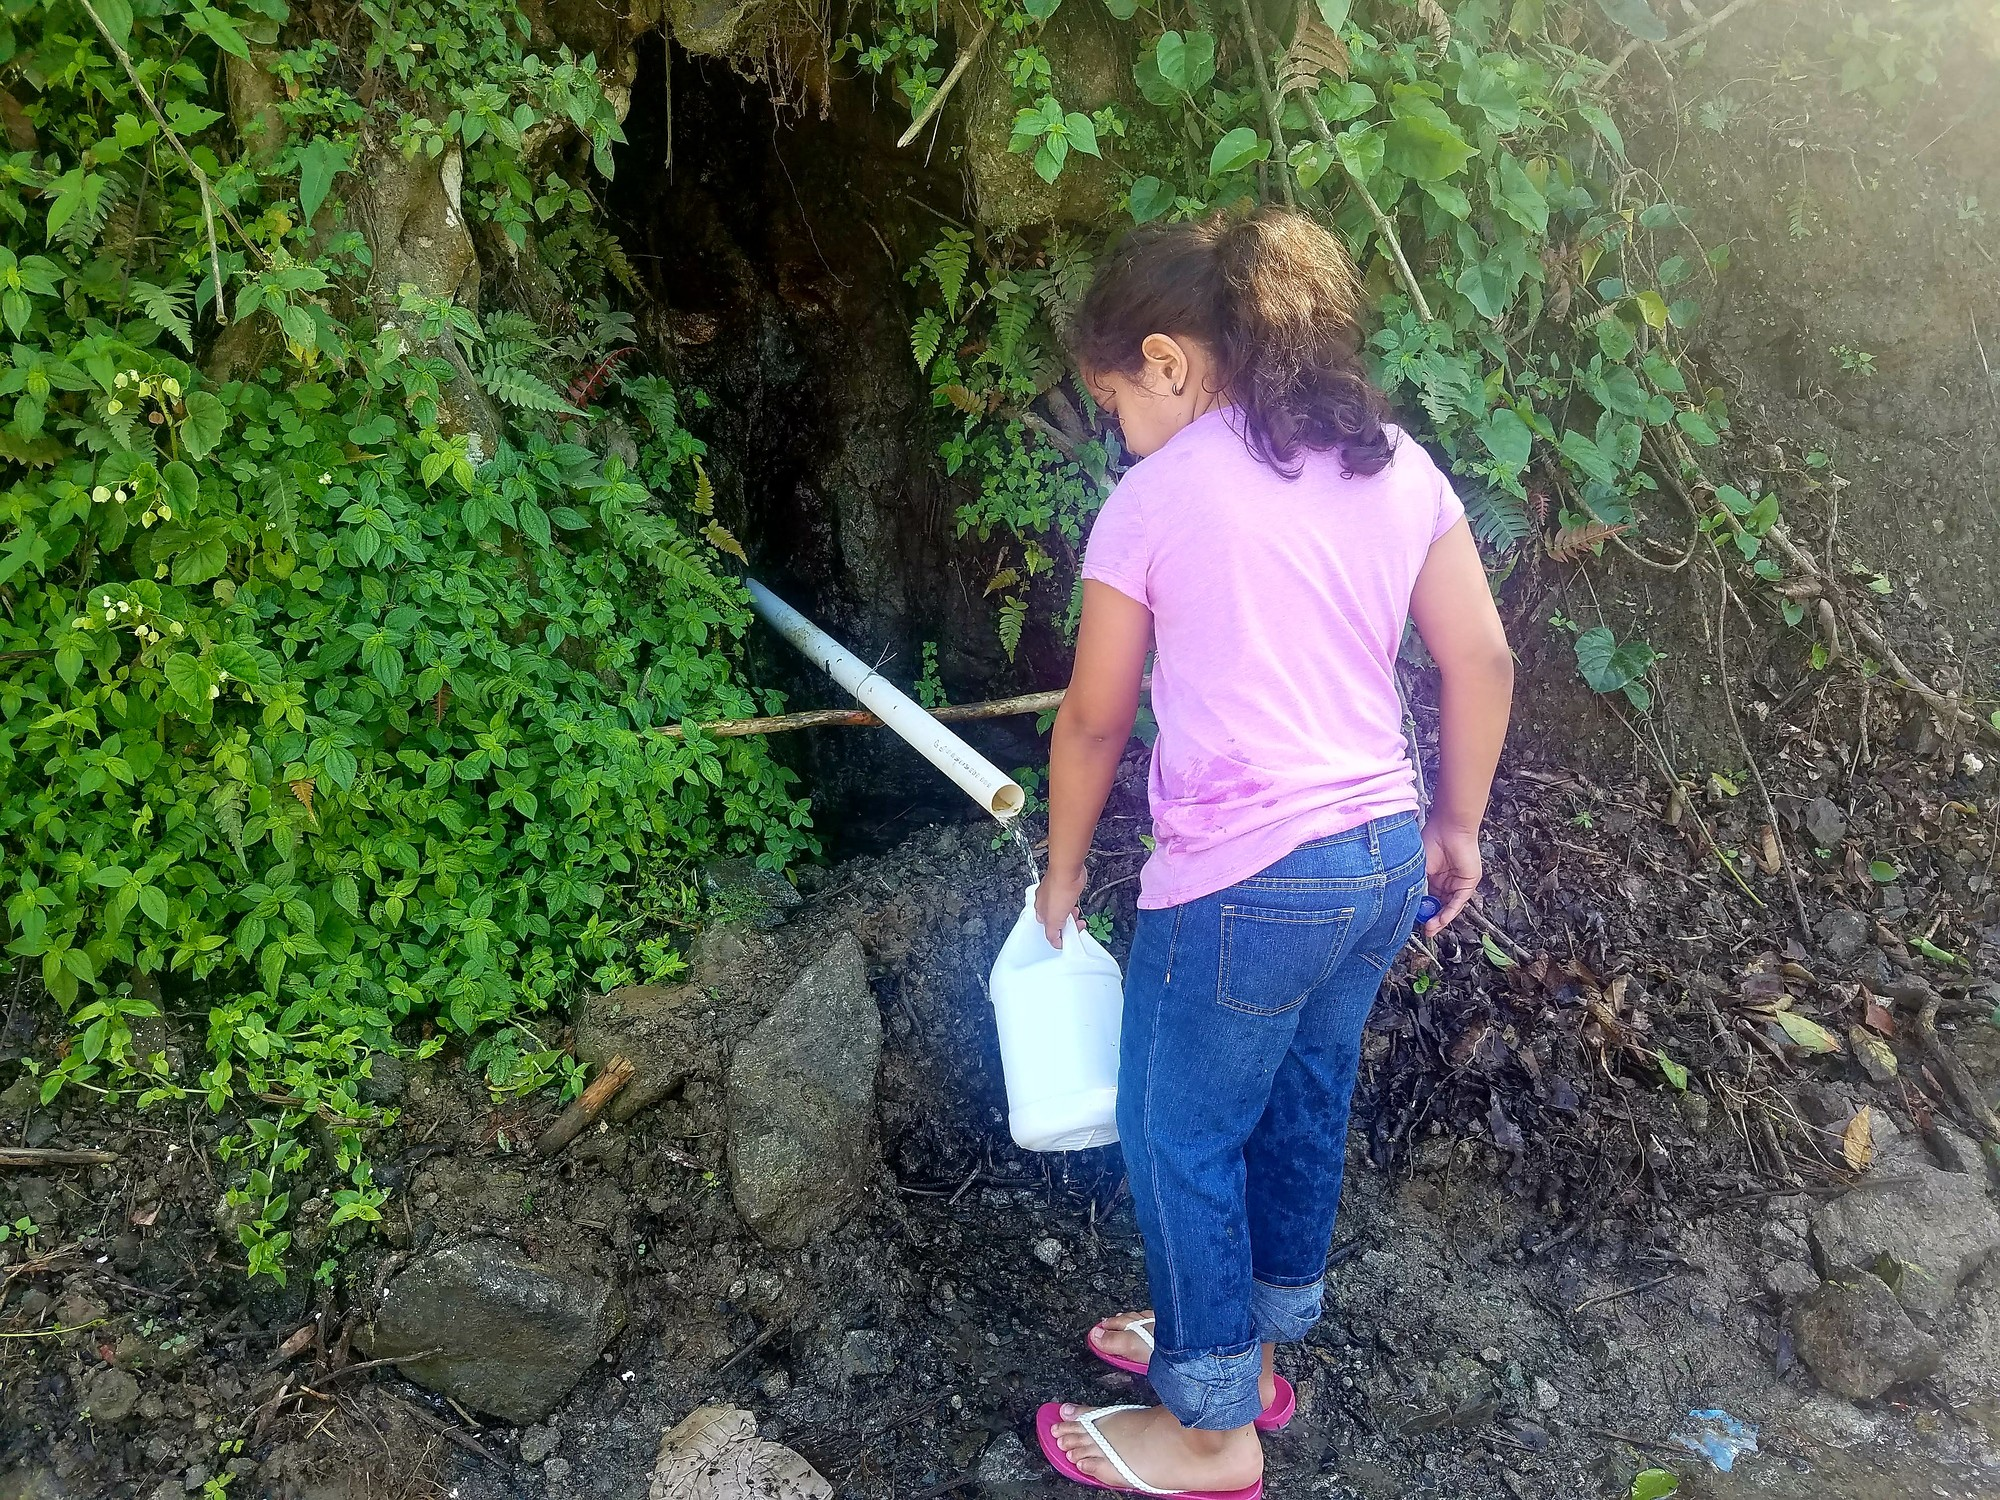 A young girl in a pink shirt, jeans, and sandals fills up water using a reused plastic jug from a roadside water source in Adjuntas, Puerto Rico